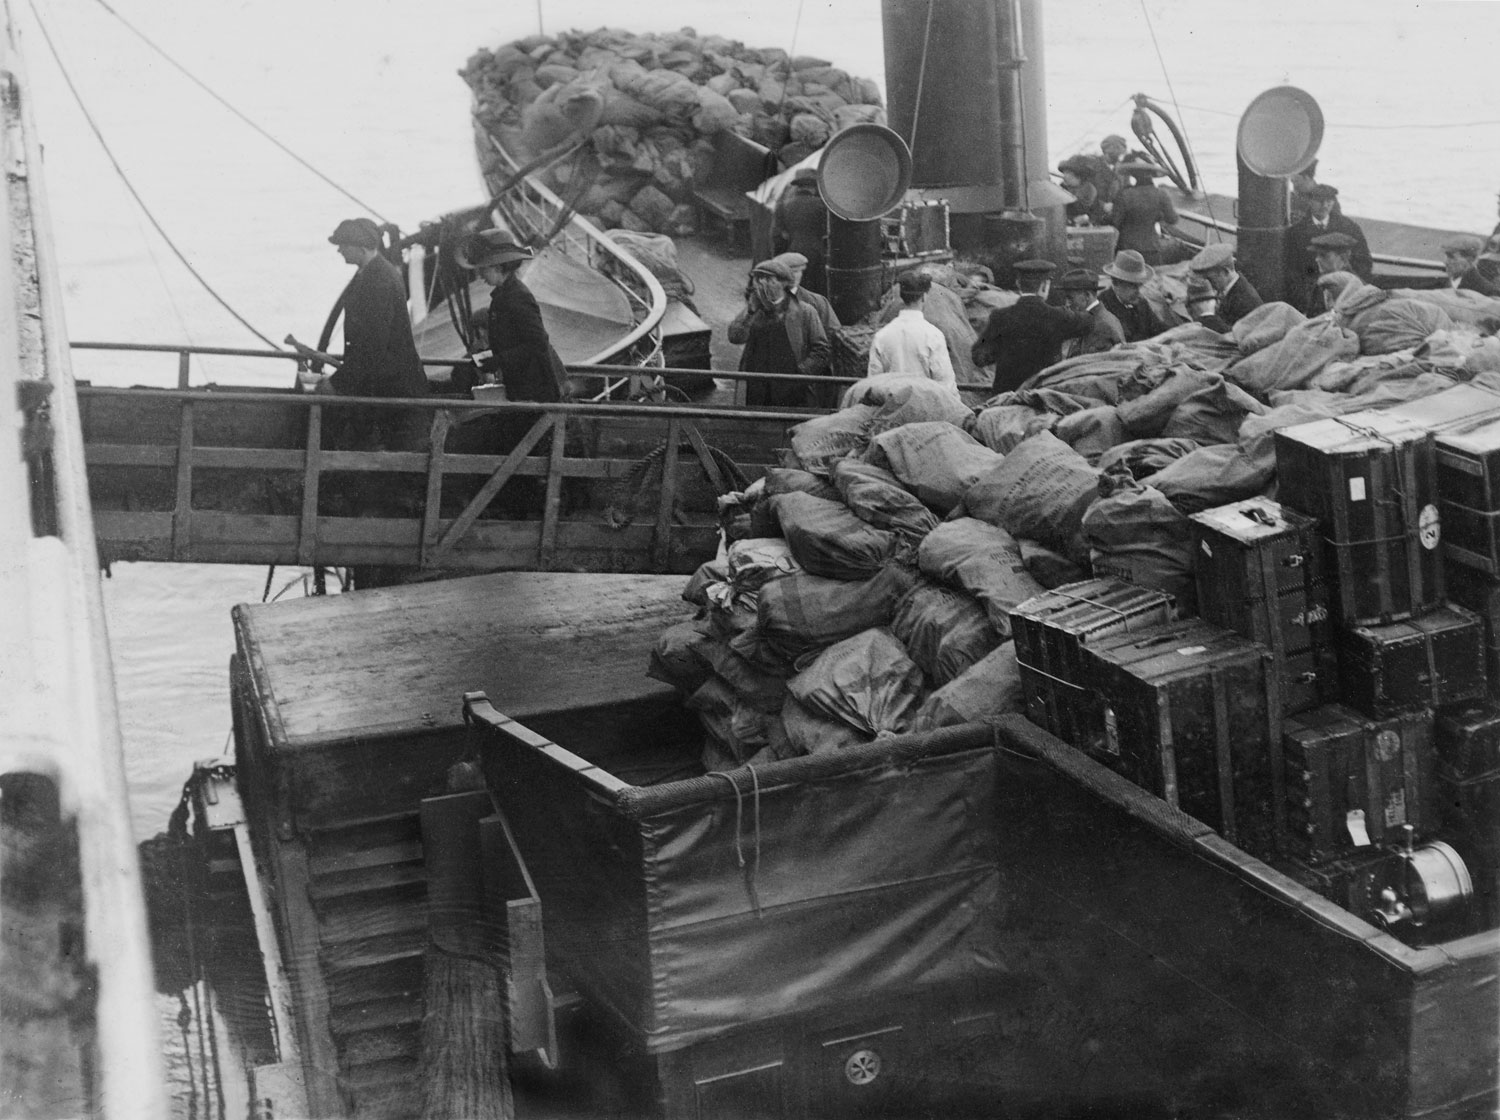 Mail bags and trunks being loaded onto the Titanic, April 11, 1912.